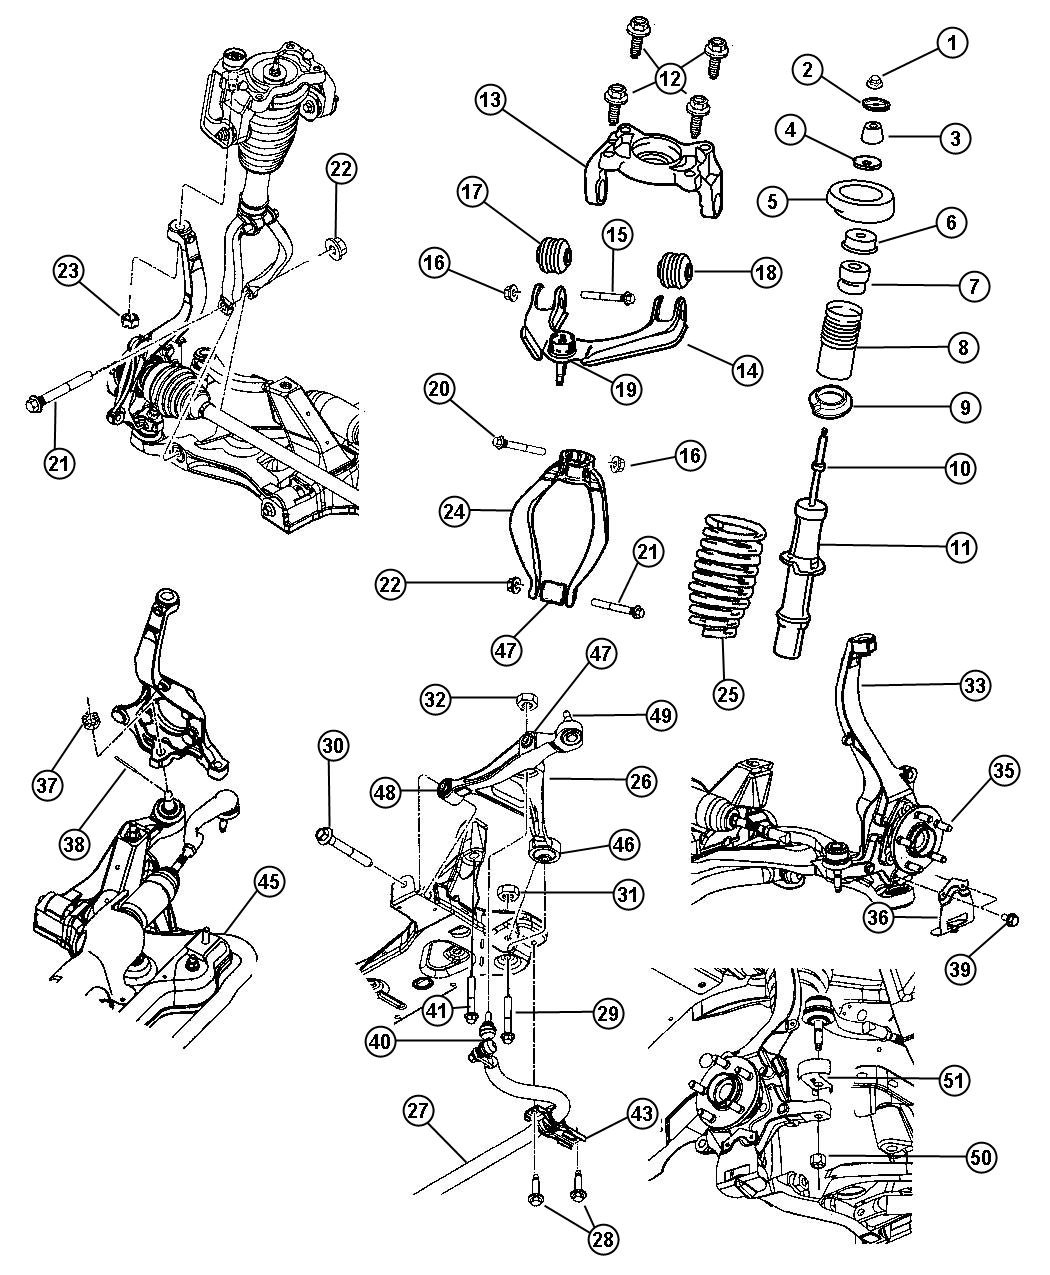 Rebuilt Rockwell Differentials in addition ShowAssembly together with 39 furthermore AdjRS as well 24754 Power Steering Pump Replacement. on dodge oem parts diagram